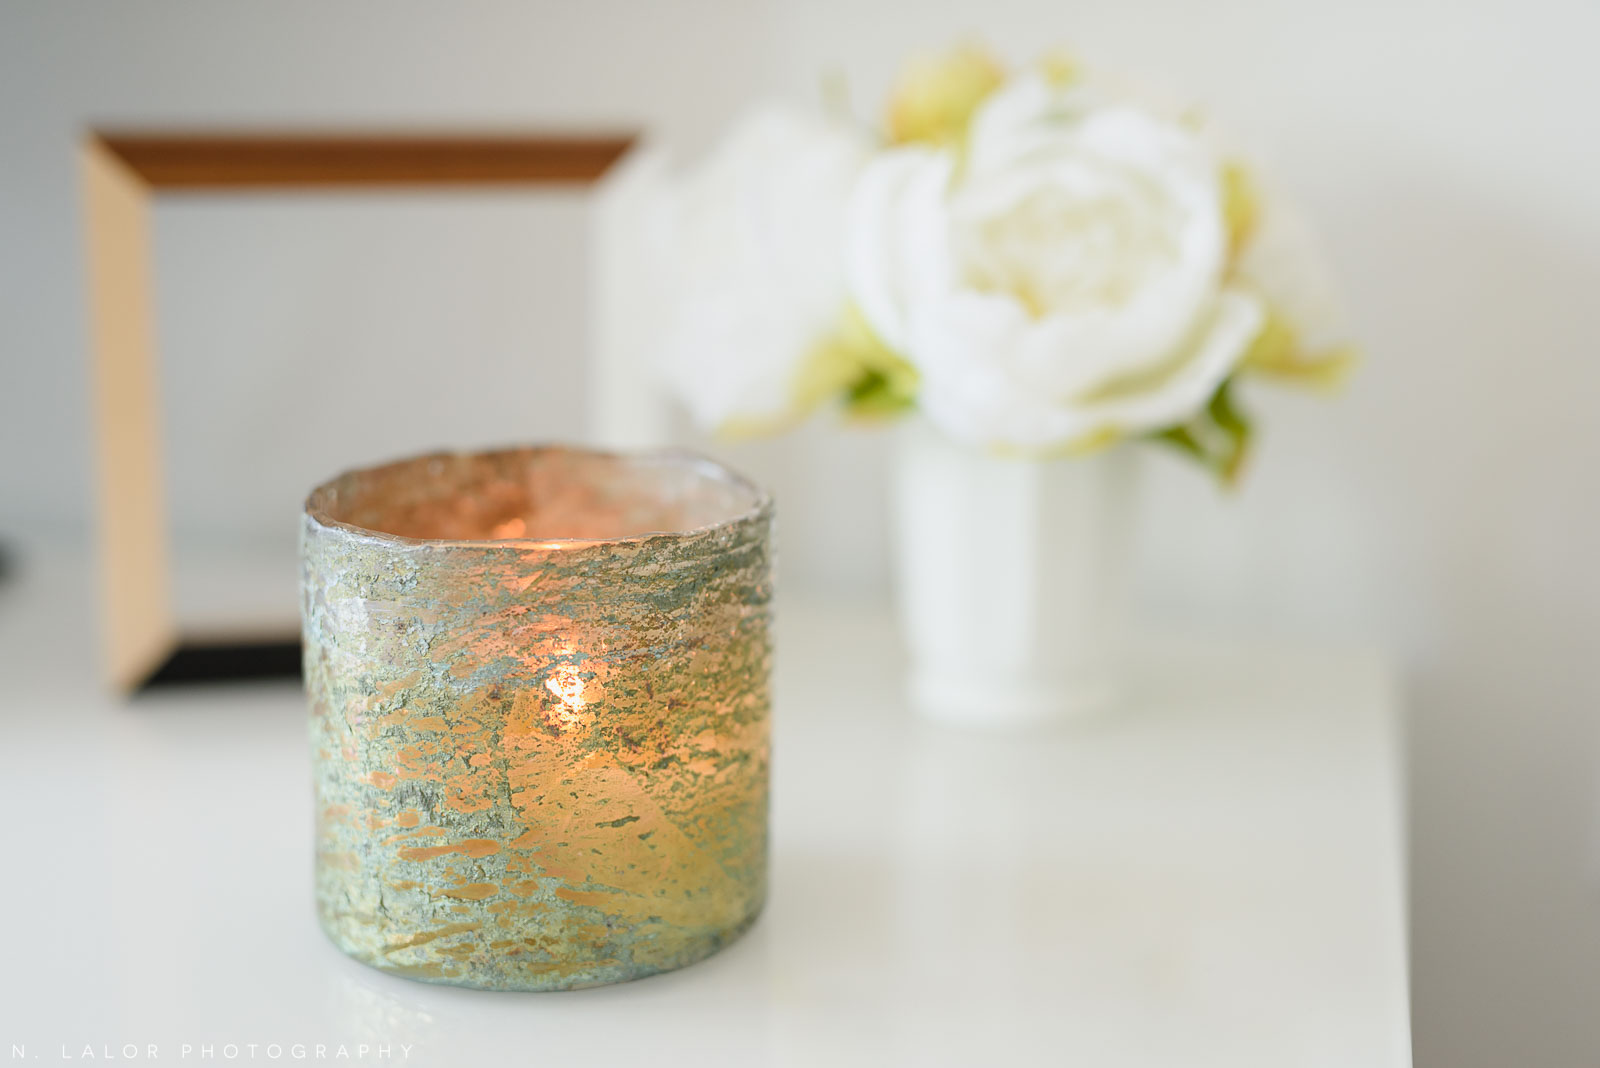 Image of a scented candle burning to create a nice atmosphere in a photography Studio.